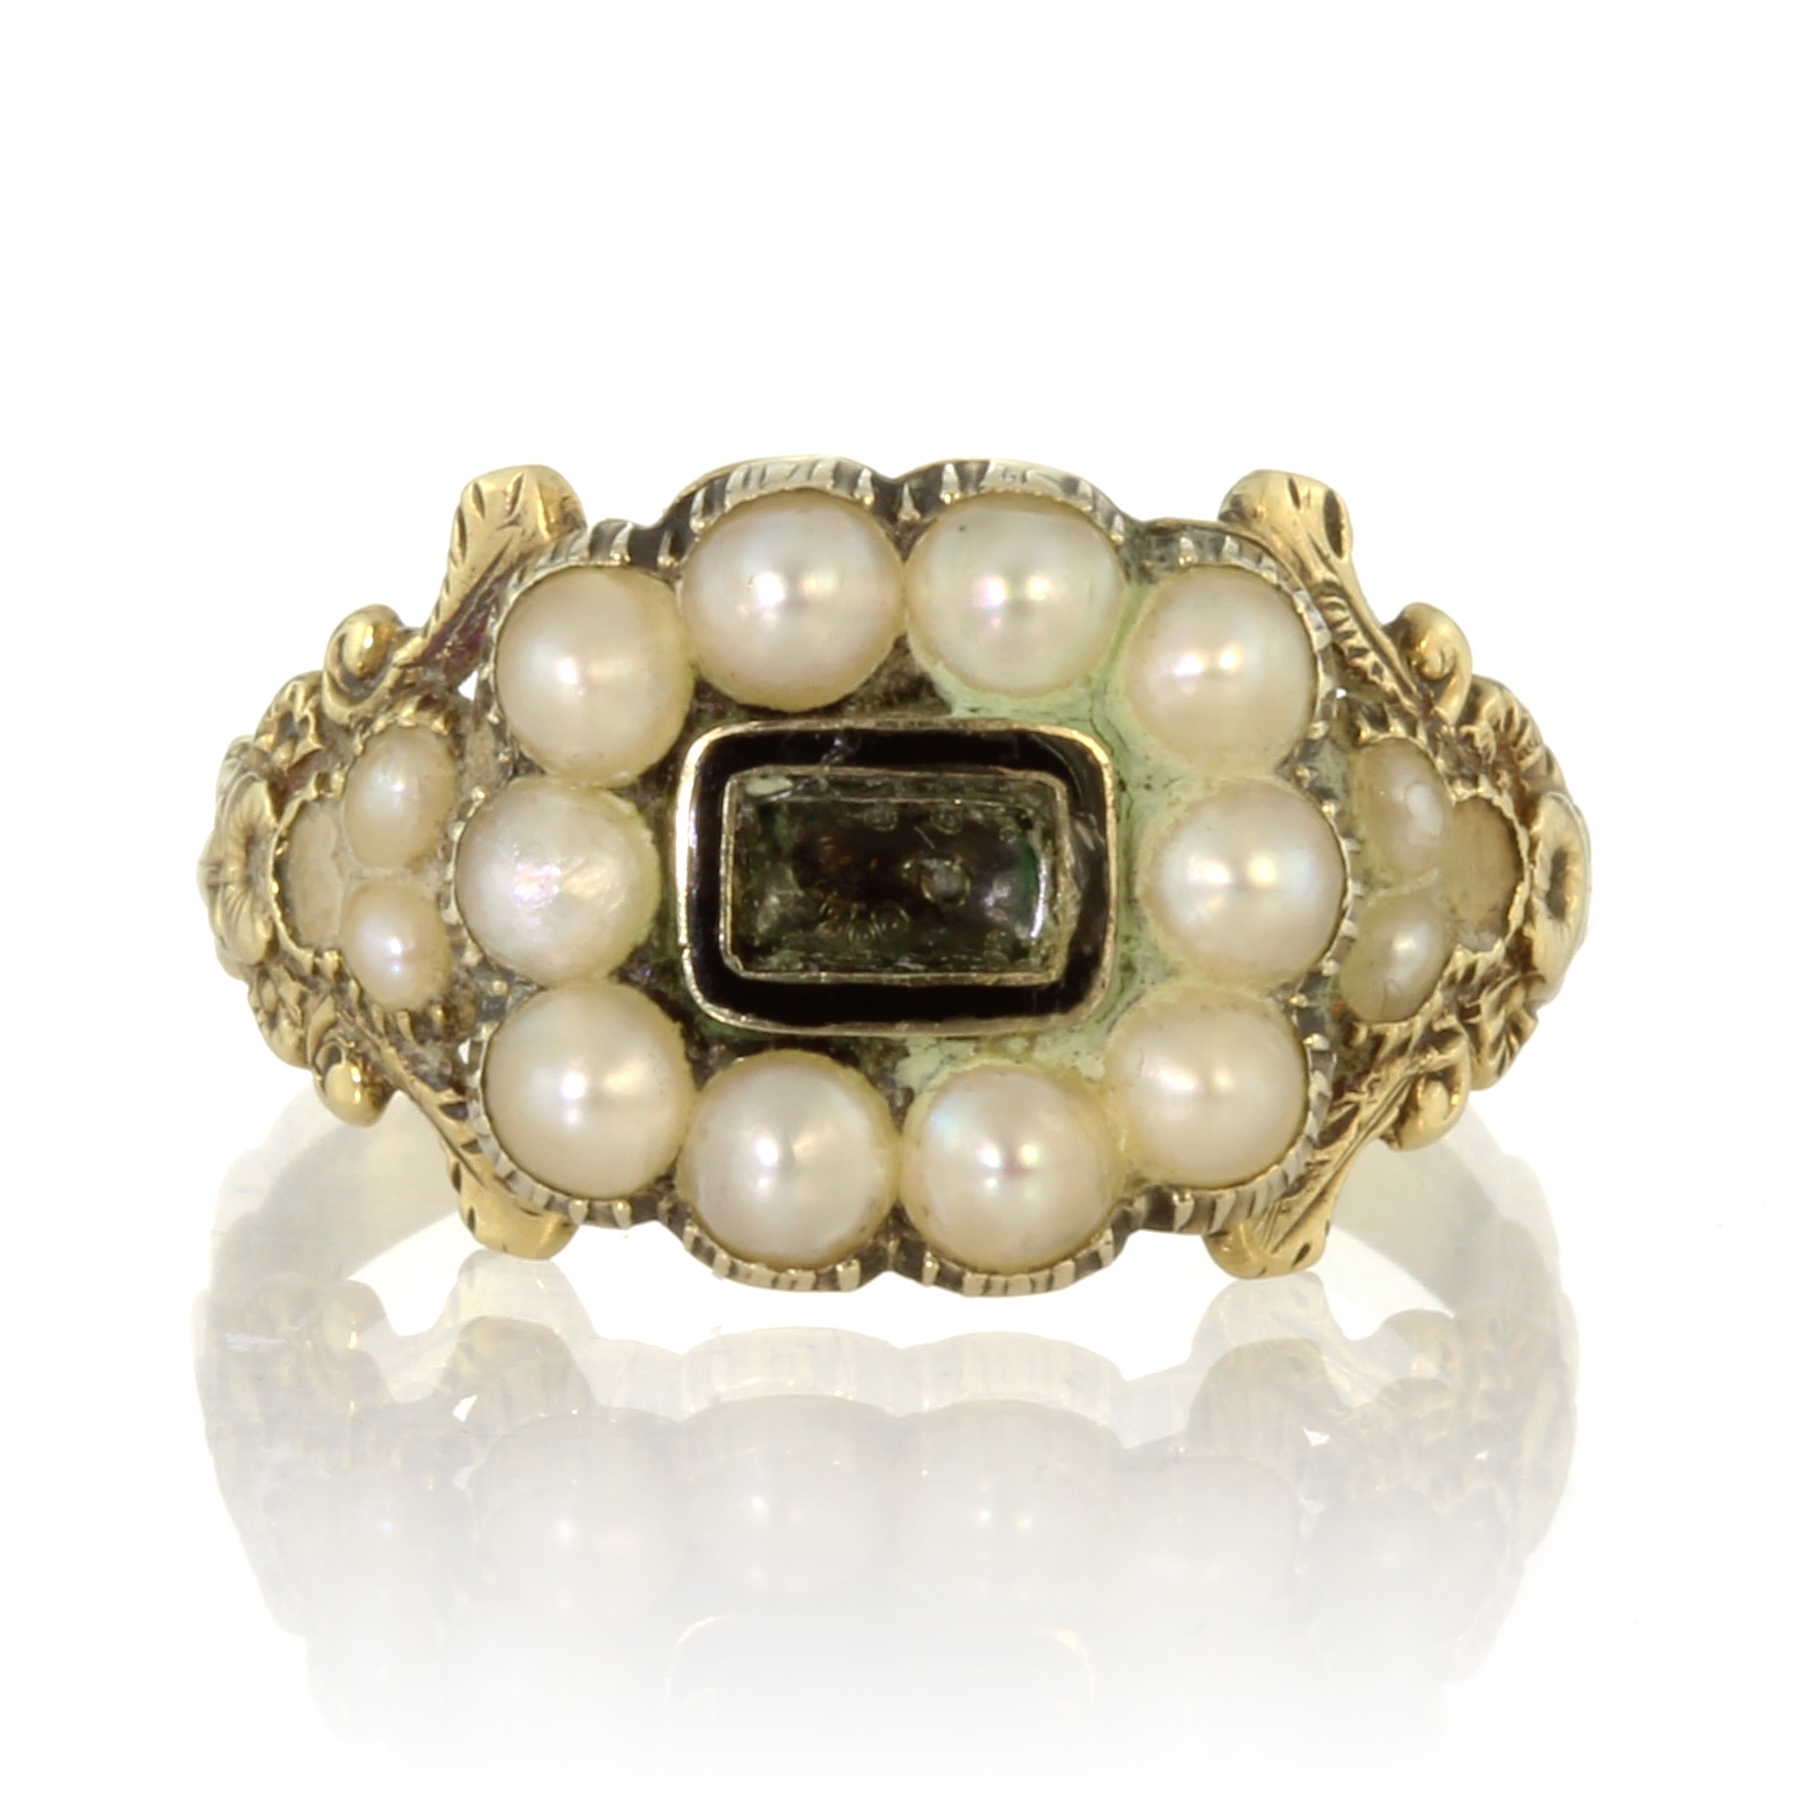 Los 58 - An antique Georgian hairwork and pearl mourning ring in 18ct yellow gold set with a central